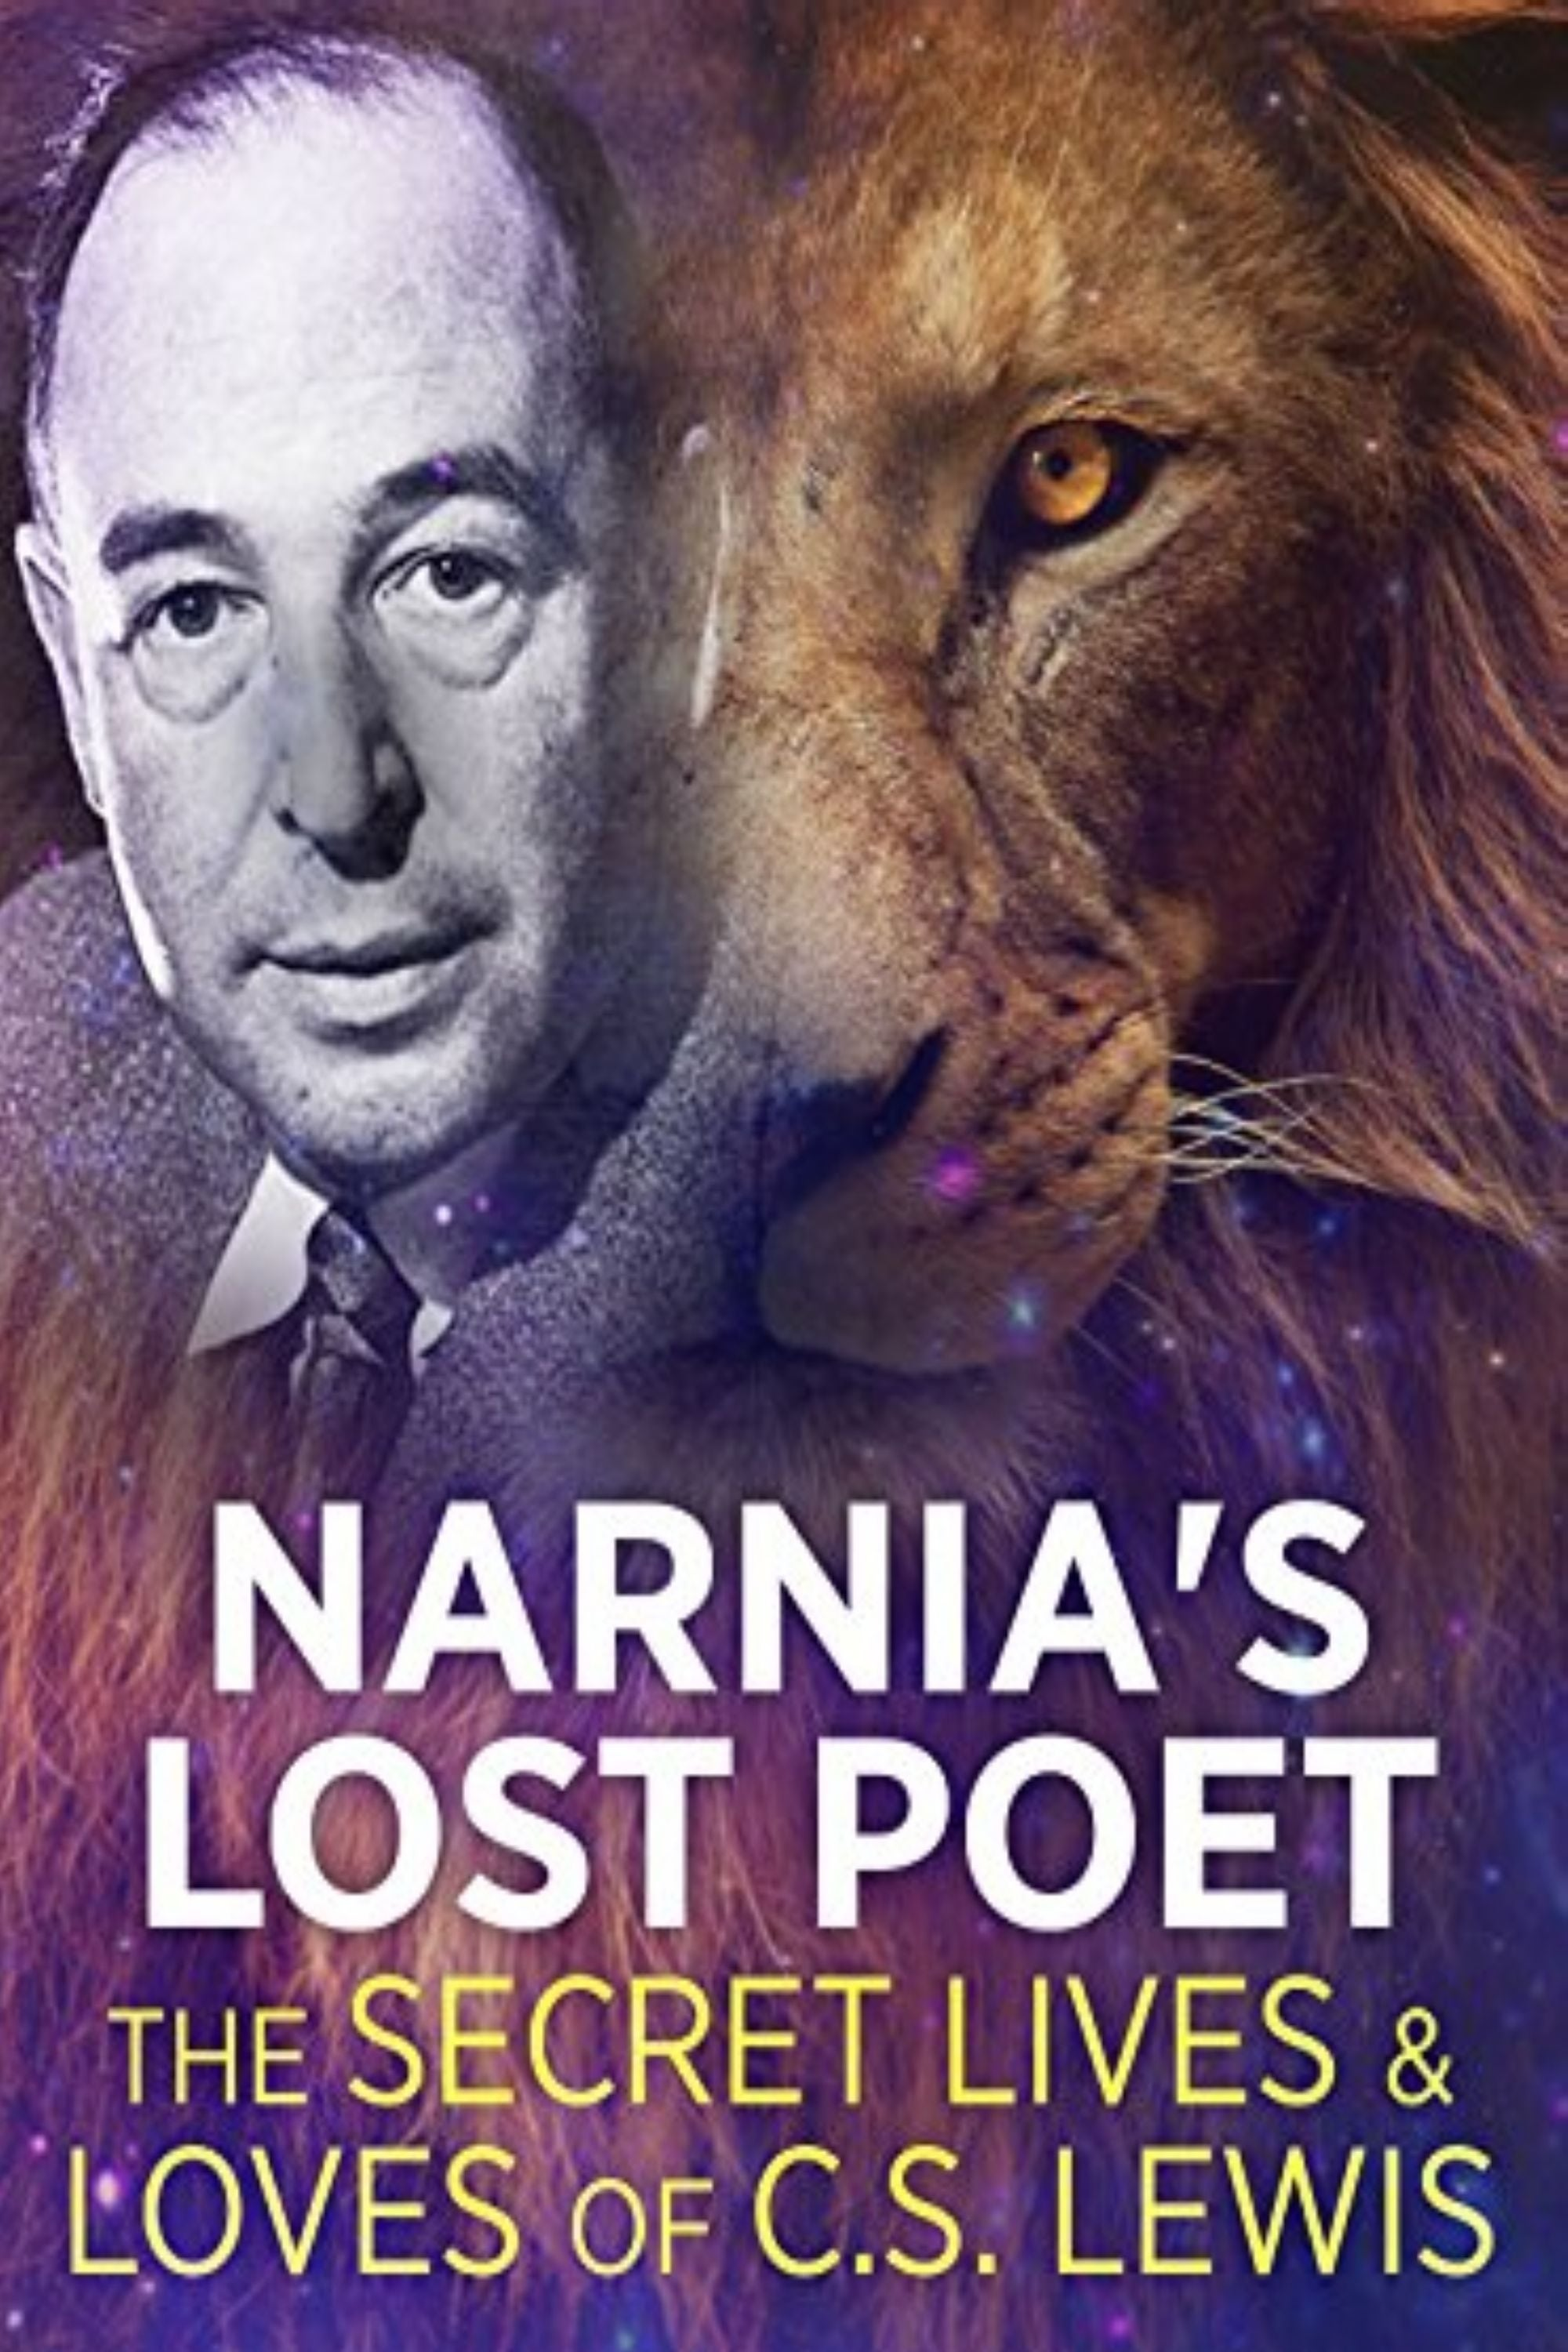 Narnia's Lost Poet: The Secret Lives and Loves of C.S. Lewis (2013)